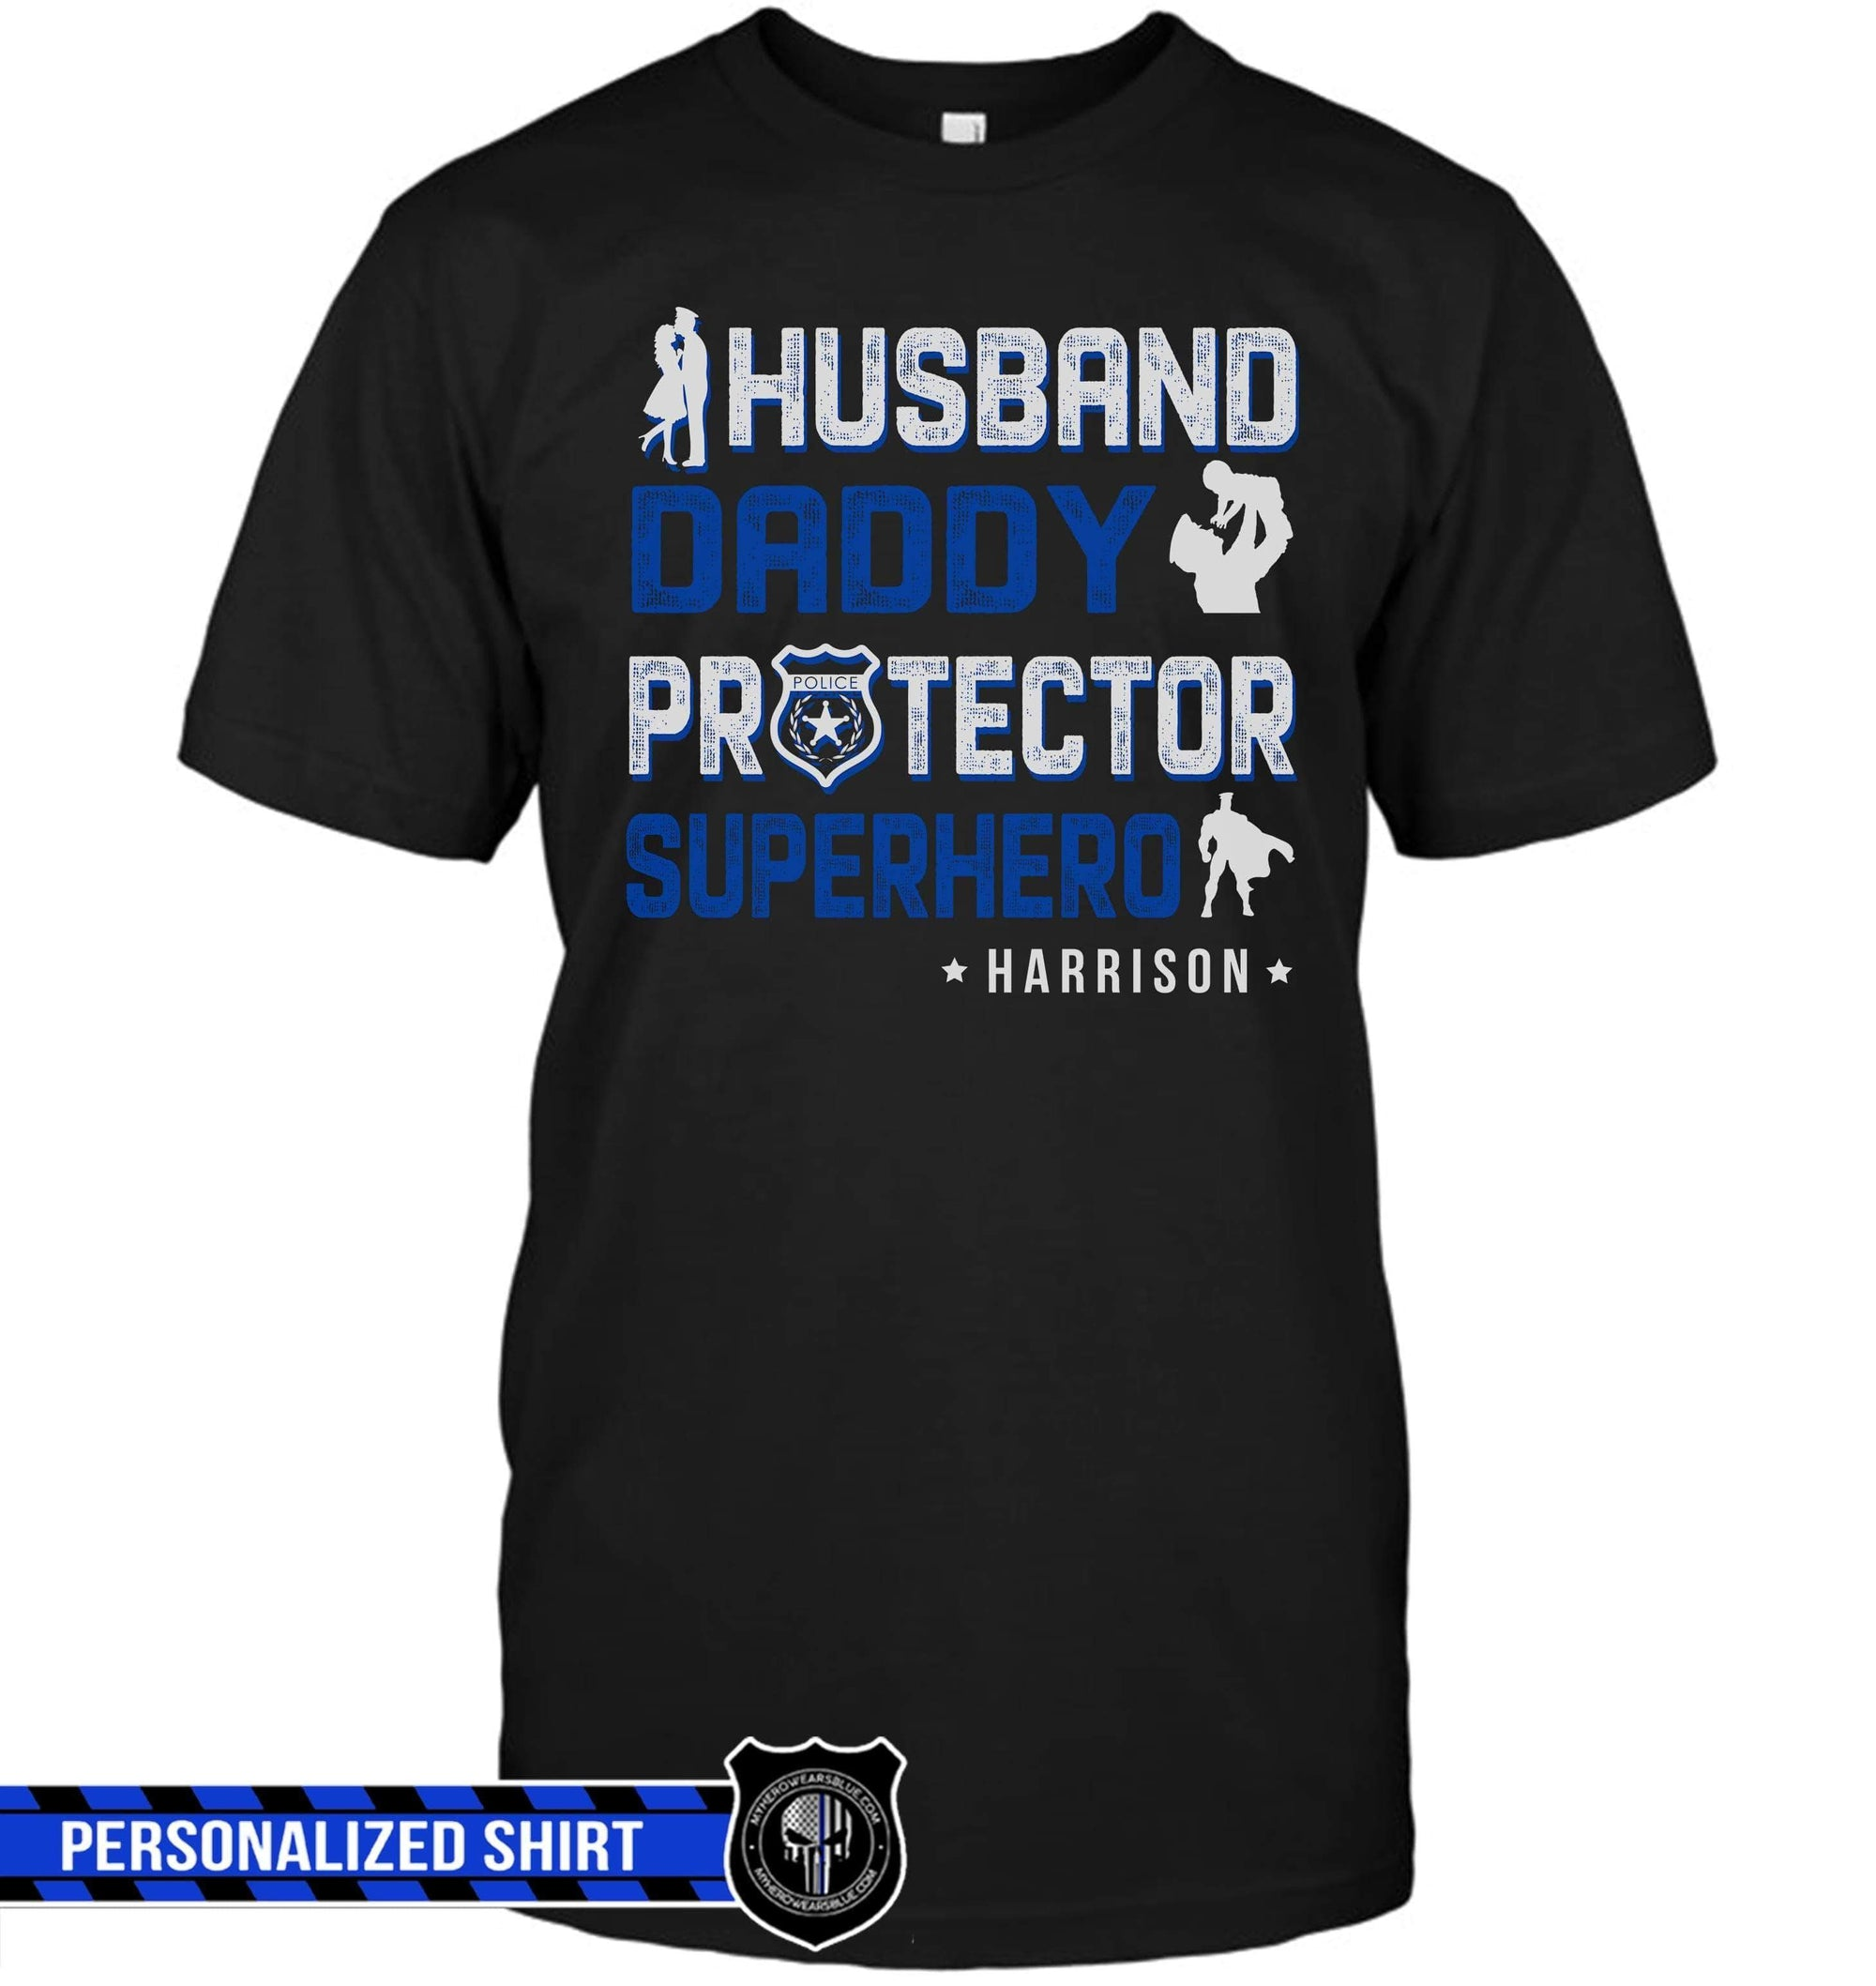 7af84753 T-shirts Basic Unisex Tee / XS / Black Personalized Shirt - Husband Daddy  Protector